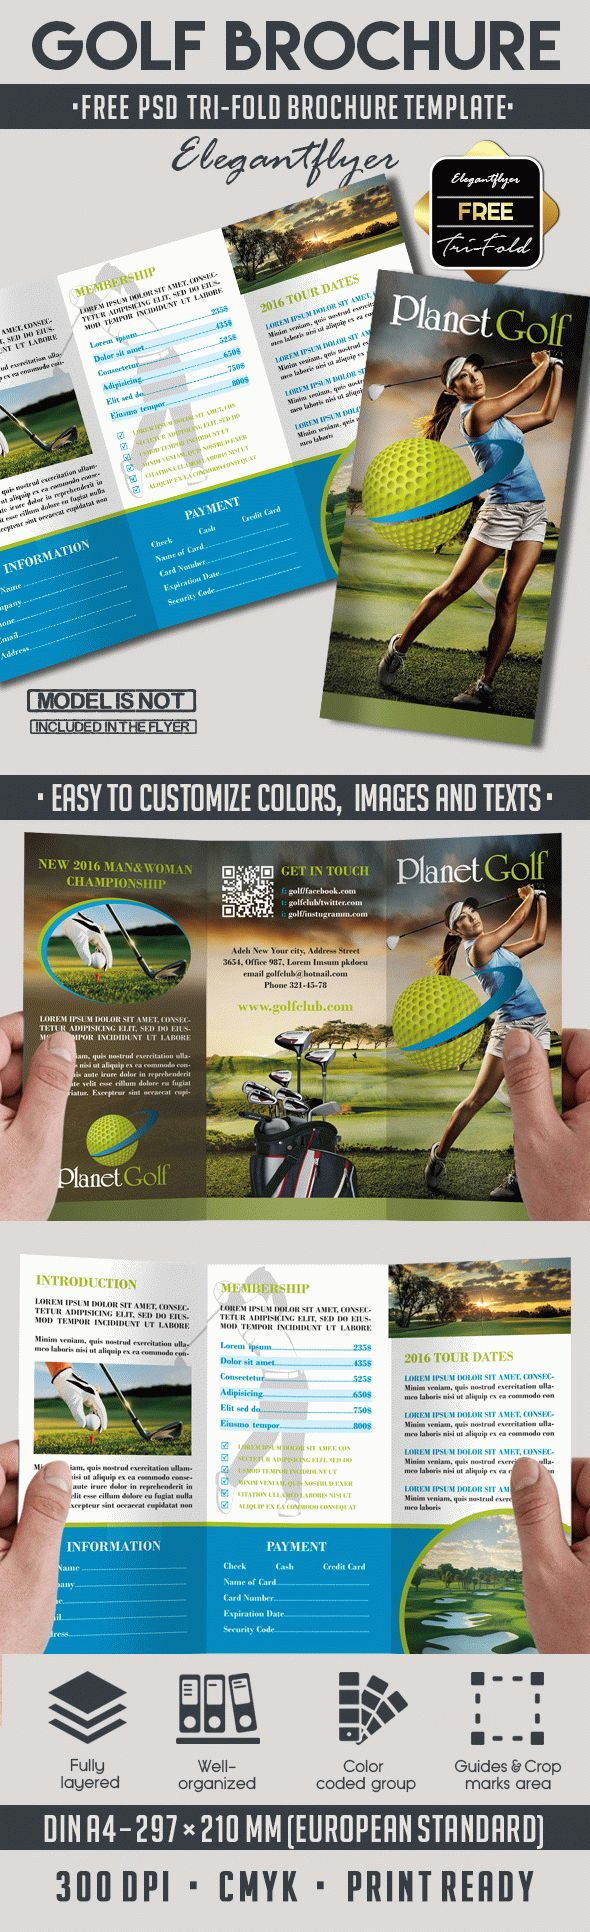 Golf club free psd tri fold psd brochure template by for Free flyer brochure templates